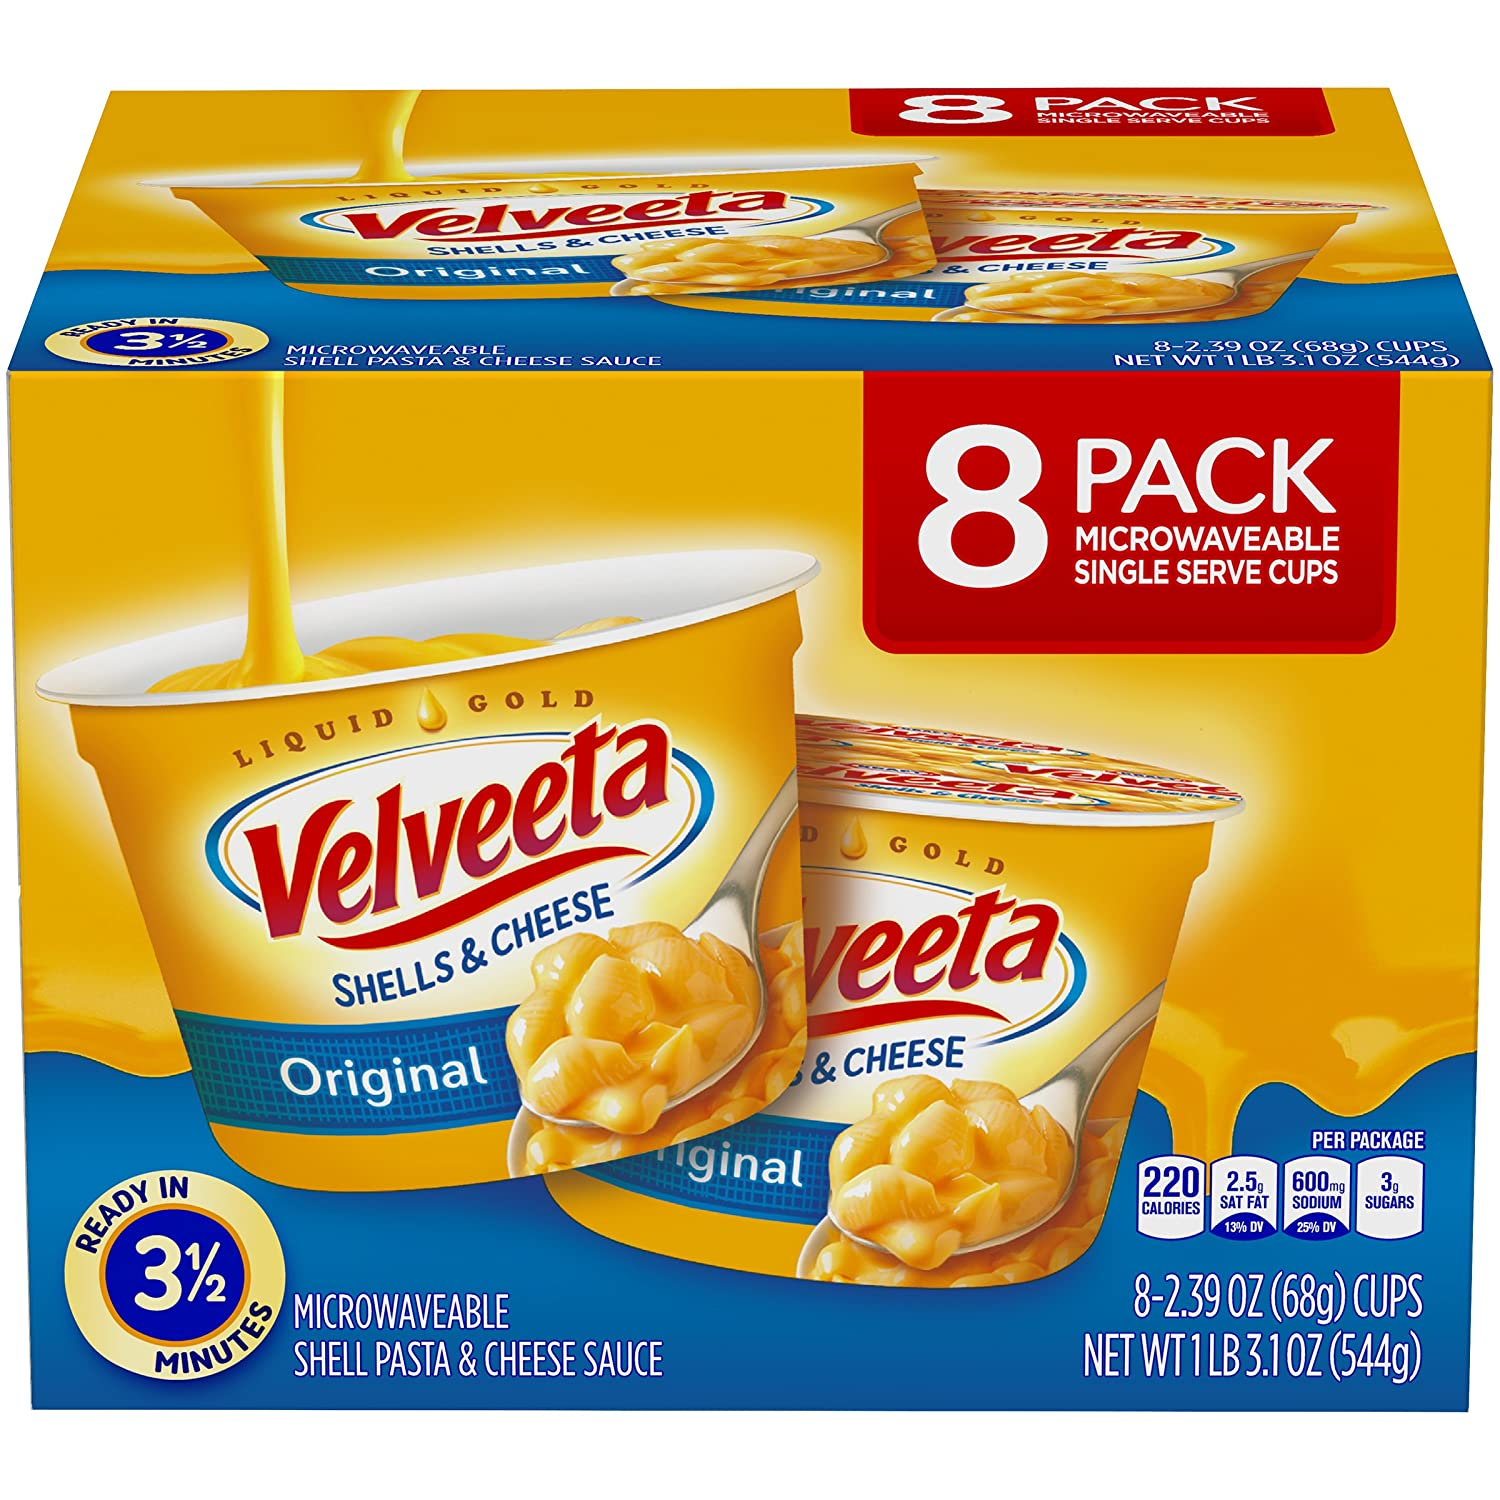 Velveeta Shells & Cheese Pasta, Original, Single Serve Microwave Cups, 8Count